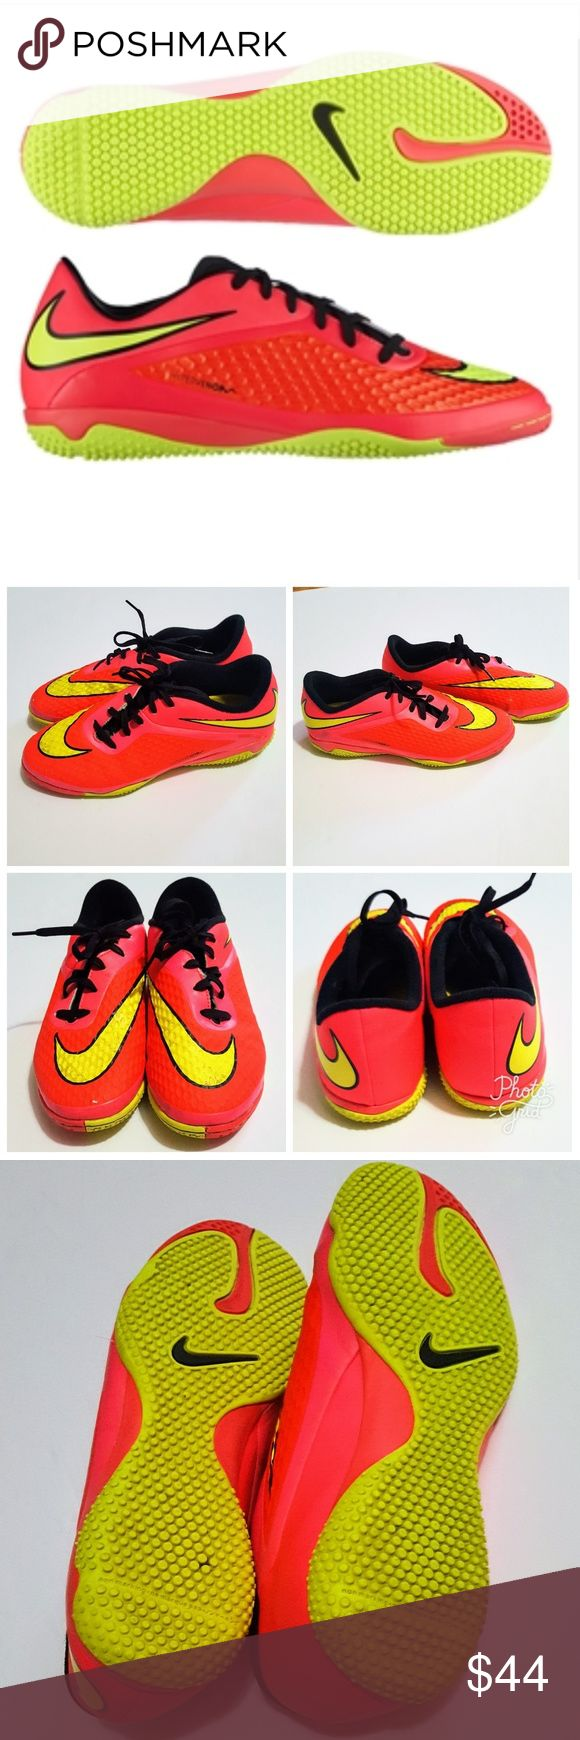 Nike Hypervenom Phelon Youth Indoor Soccer Shoes 6 Nike Hypervenom Phelon IC Indoor Soccer Shoes (Bright Crimson/Volt/Hyper Punch/Black)  Size 6 Youth. Very good overall condition with signs of wear as shown in pics (some scuffing etc). Awesome neon colors. Actual colors are in the first paragraph. First pic is a stock photo. Nike Shoes Sneakers